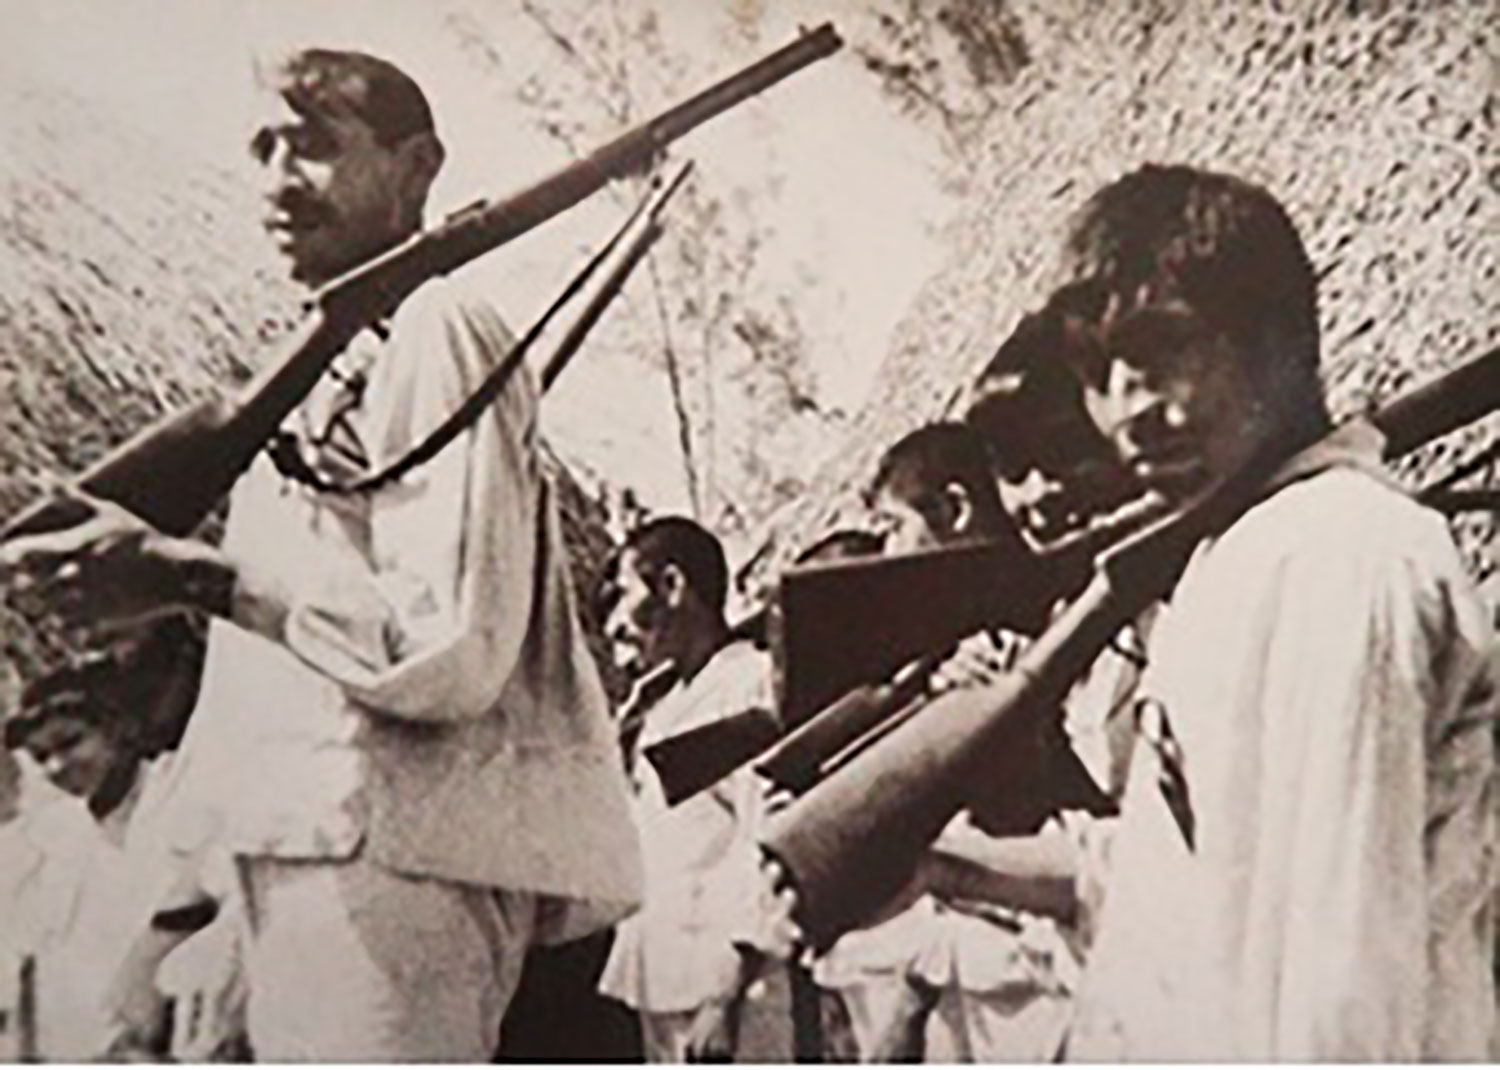 The Caste War Maya soldiers, from the Yucatan Times magazine.